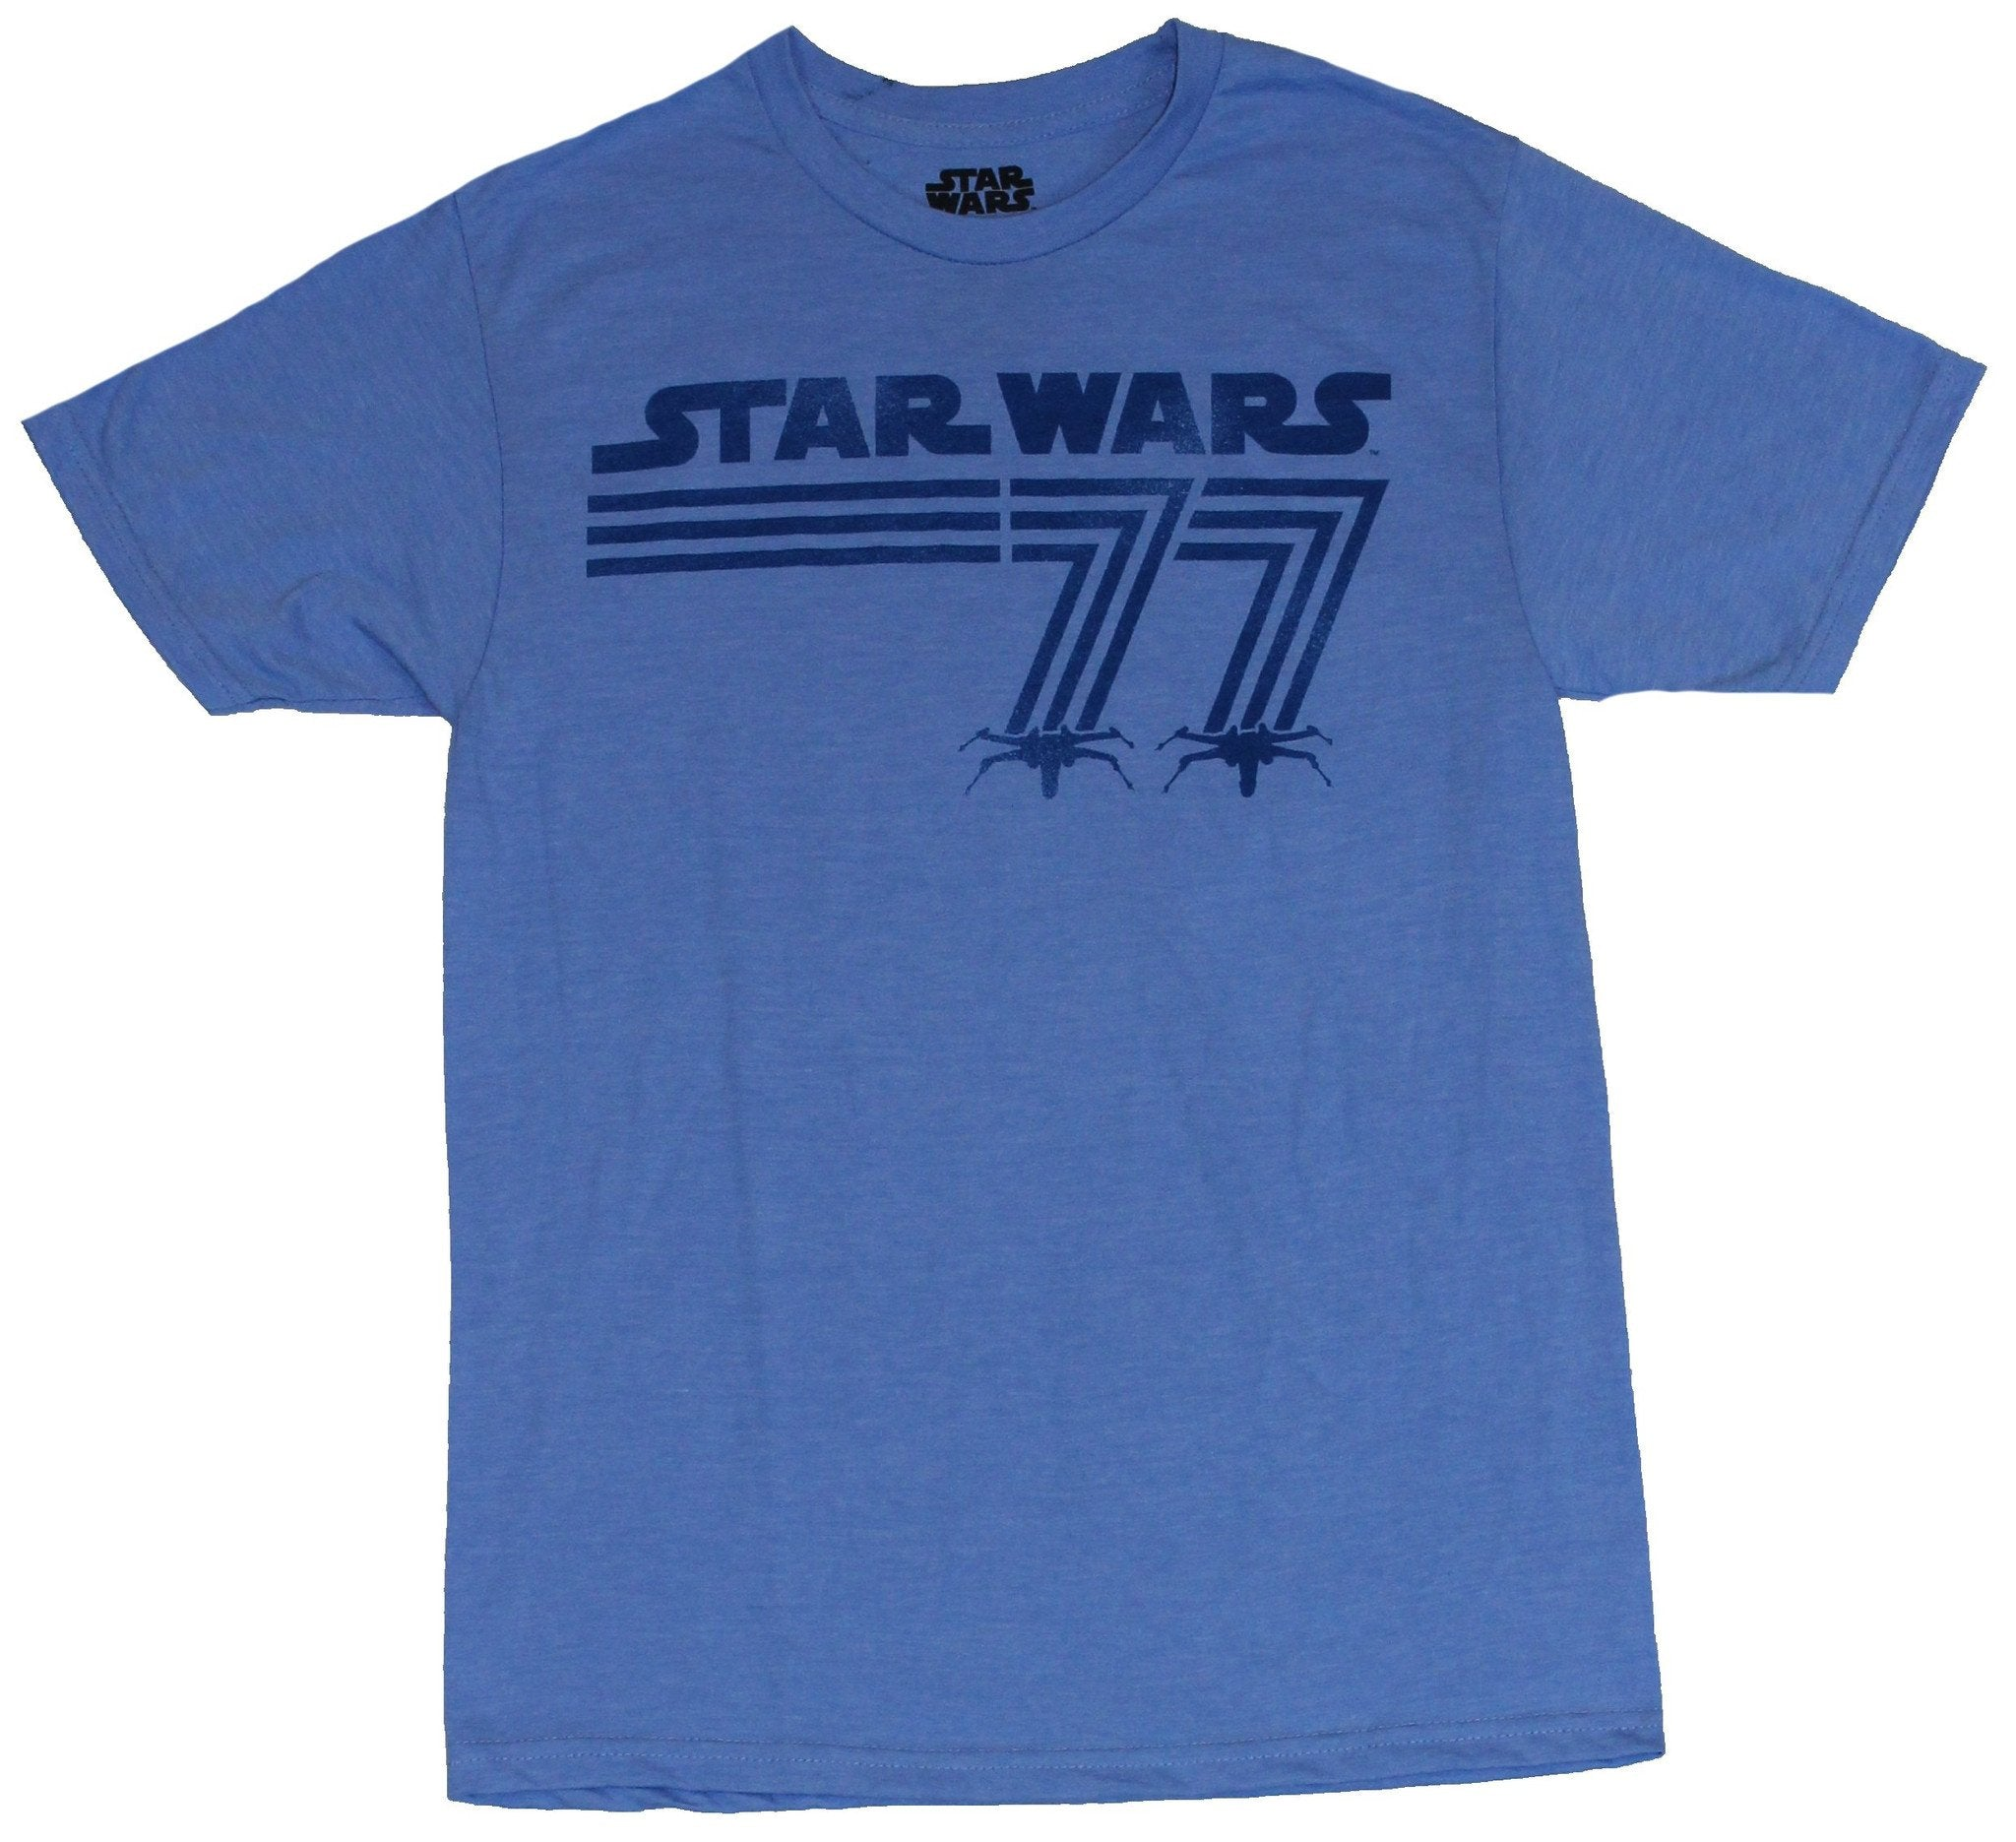 Star Wars Mens T-Shirt - Lined Star Wars 77 X-Wing Attack